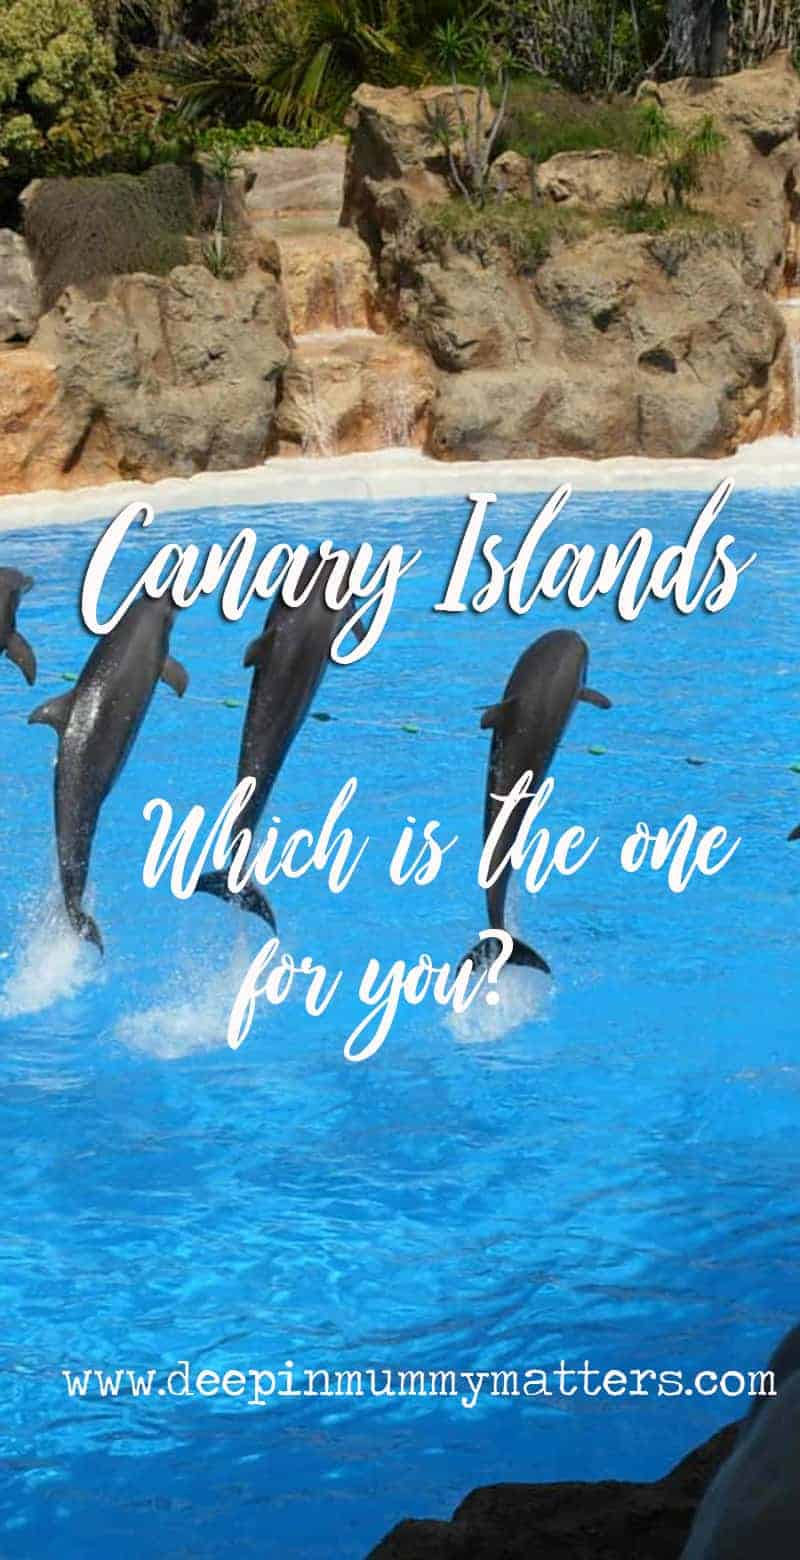 Canary Islands - which is the one for you?